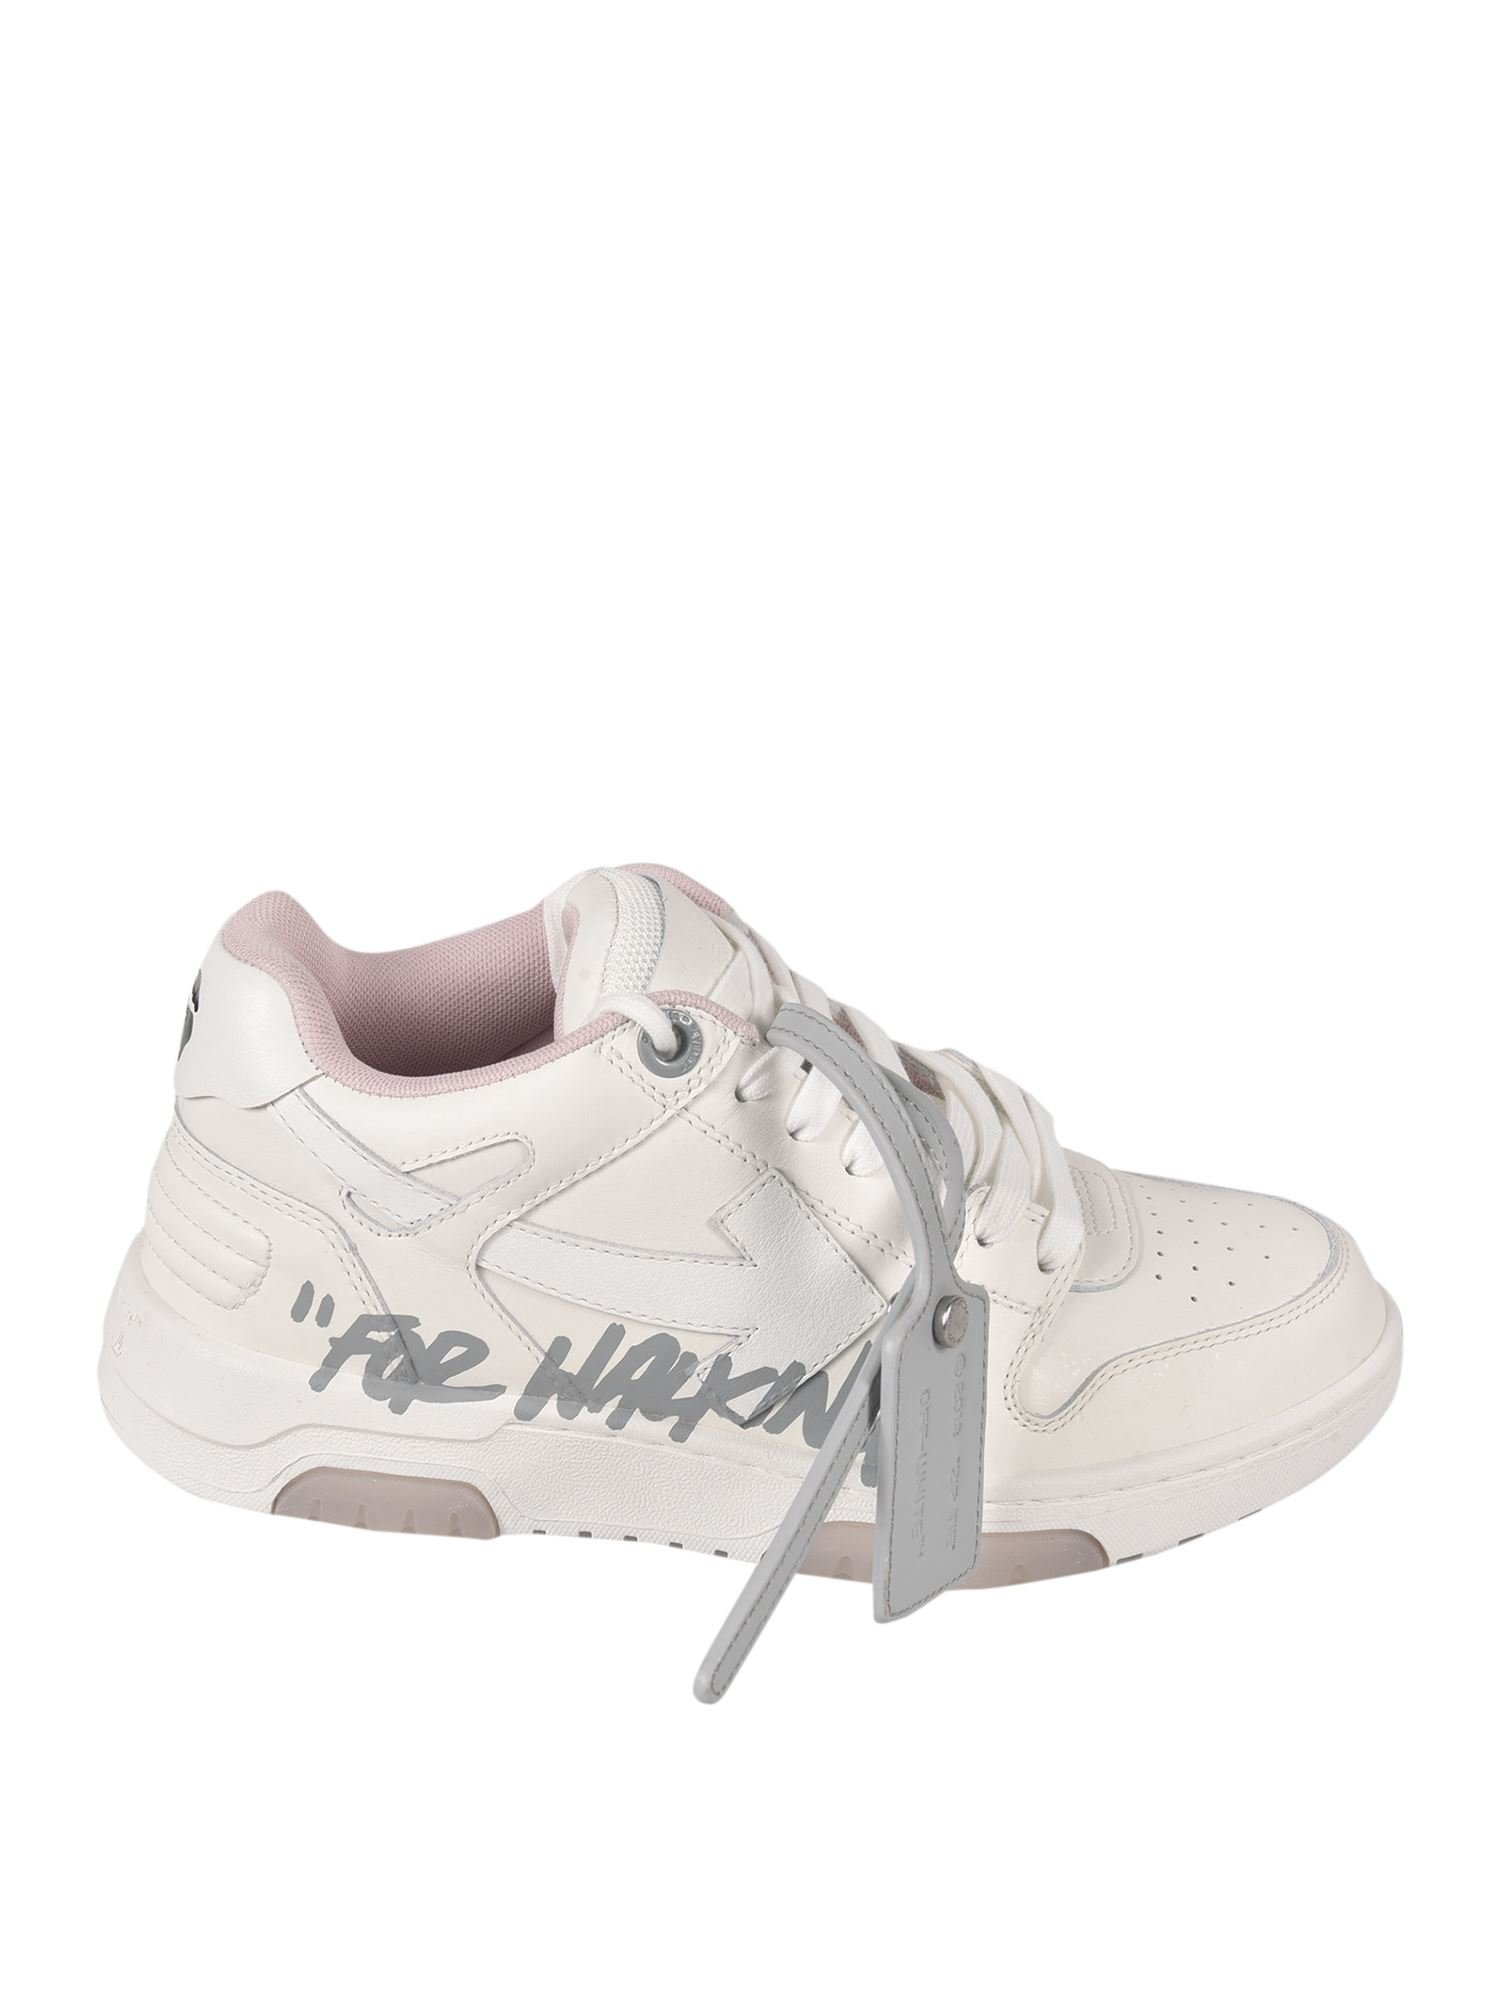 Off-White OUT OF OFFICE SNEAKERS IN WHITE AND PINK